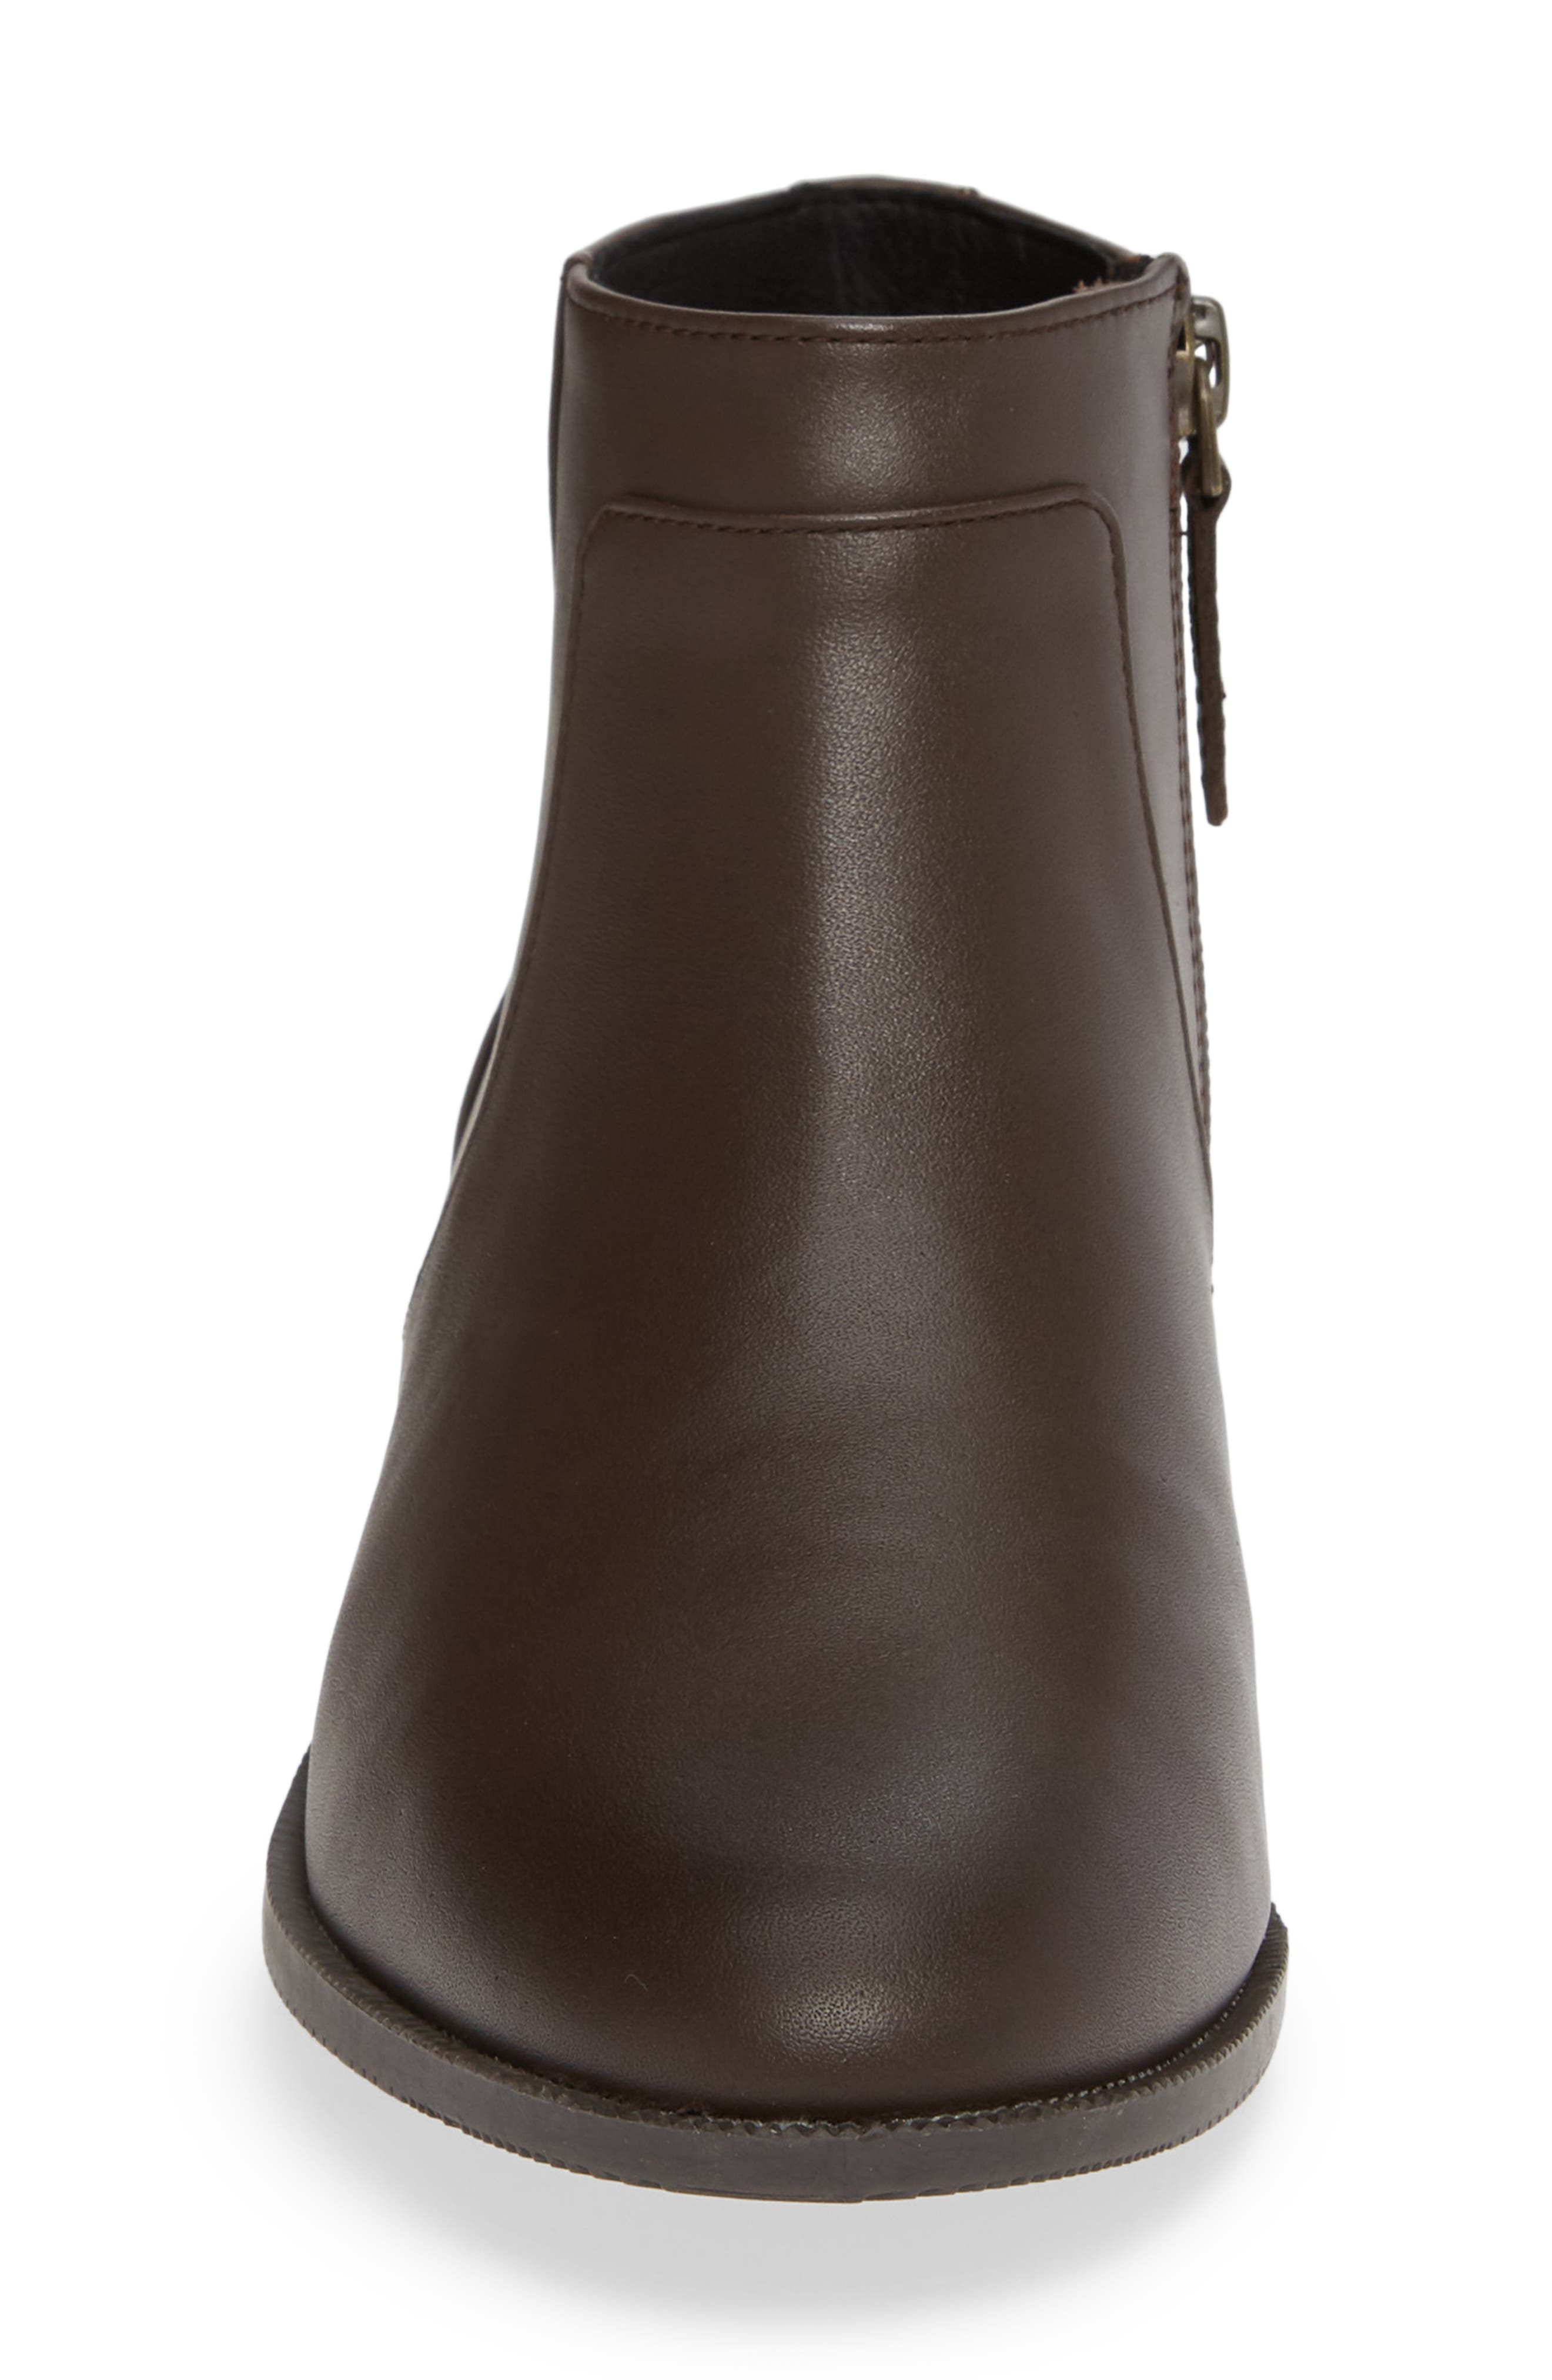 Benette Water Resistant Bootie,                             Alternate thumbnail 4, color,                             CHOCOLATE LEATHER